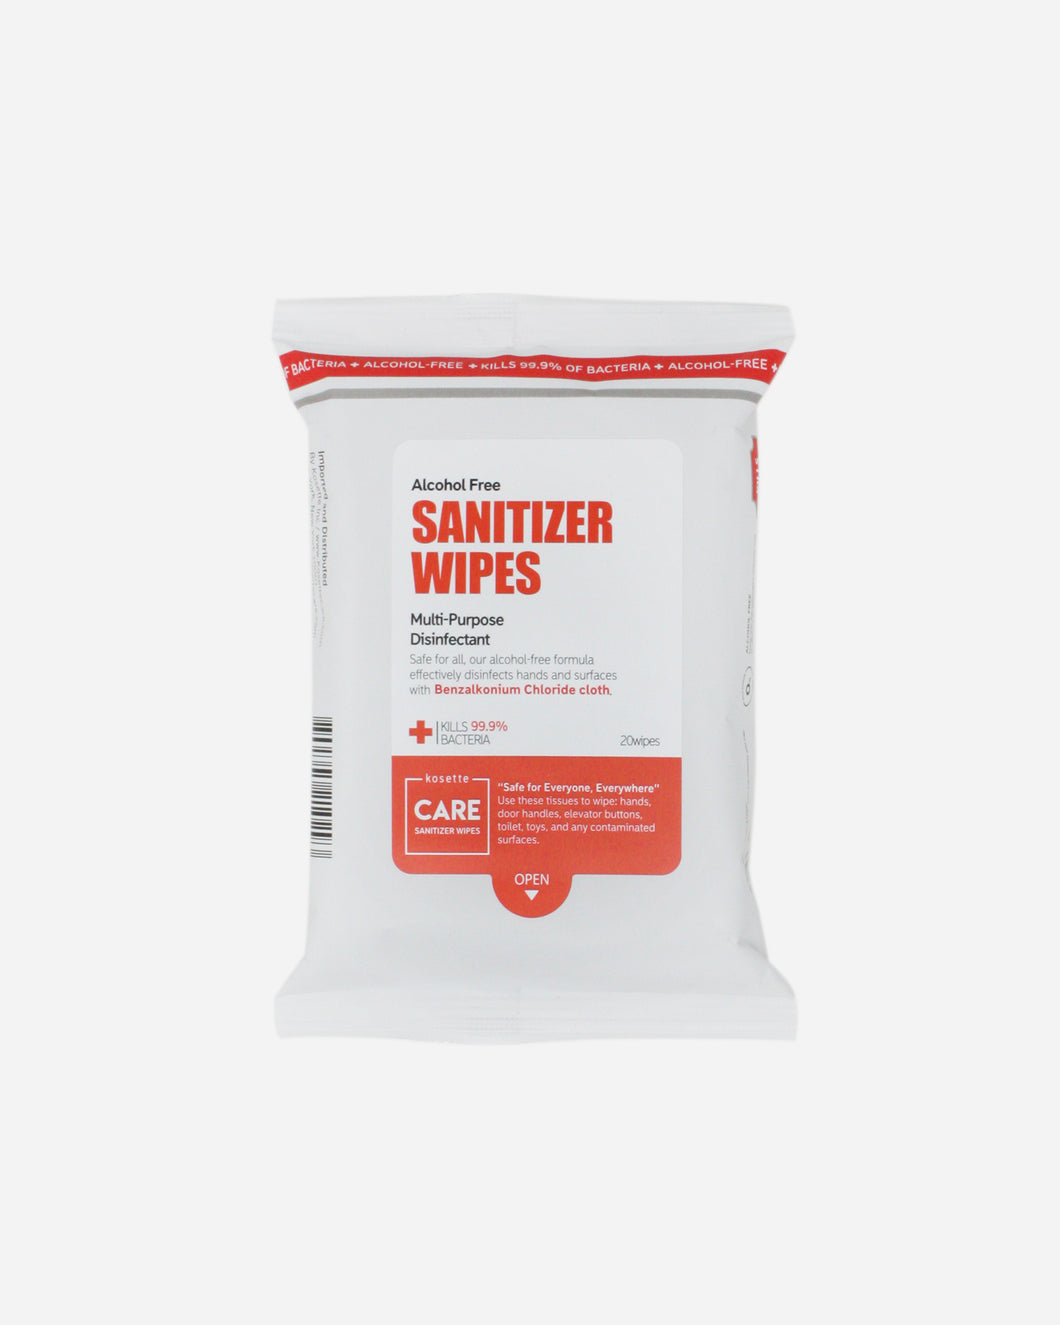 Sanitizer Wipes - 20 sheets